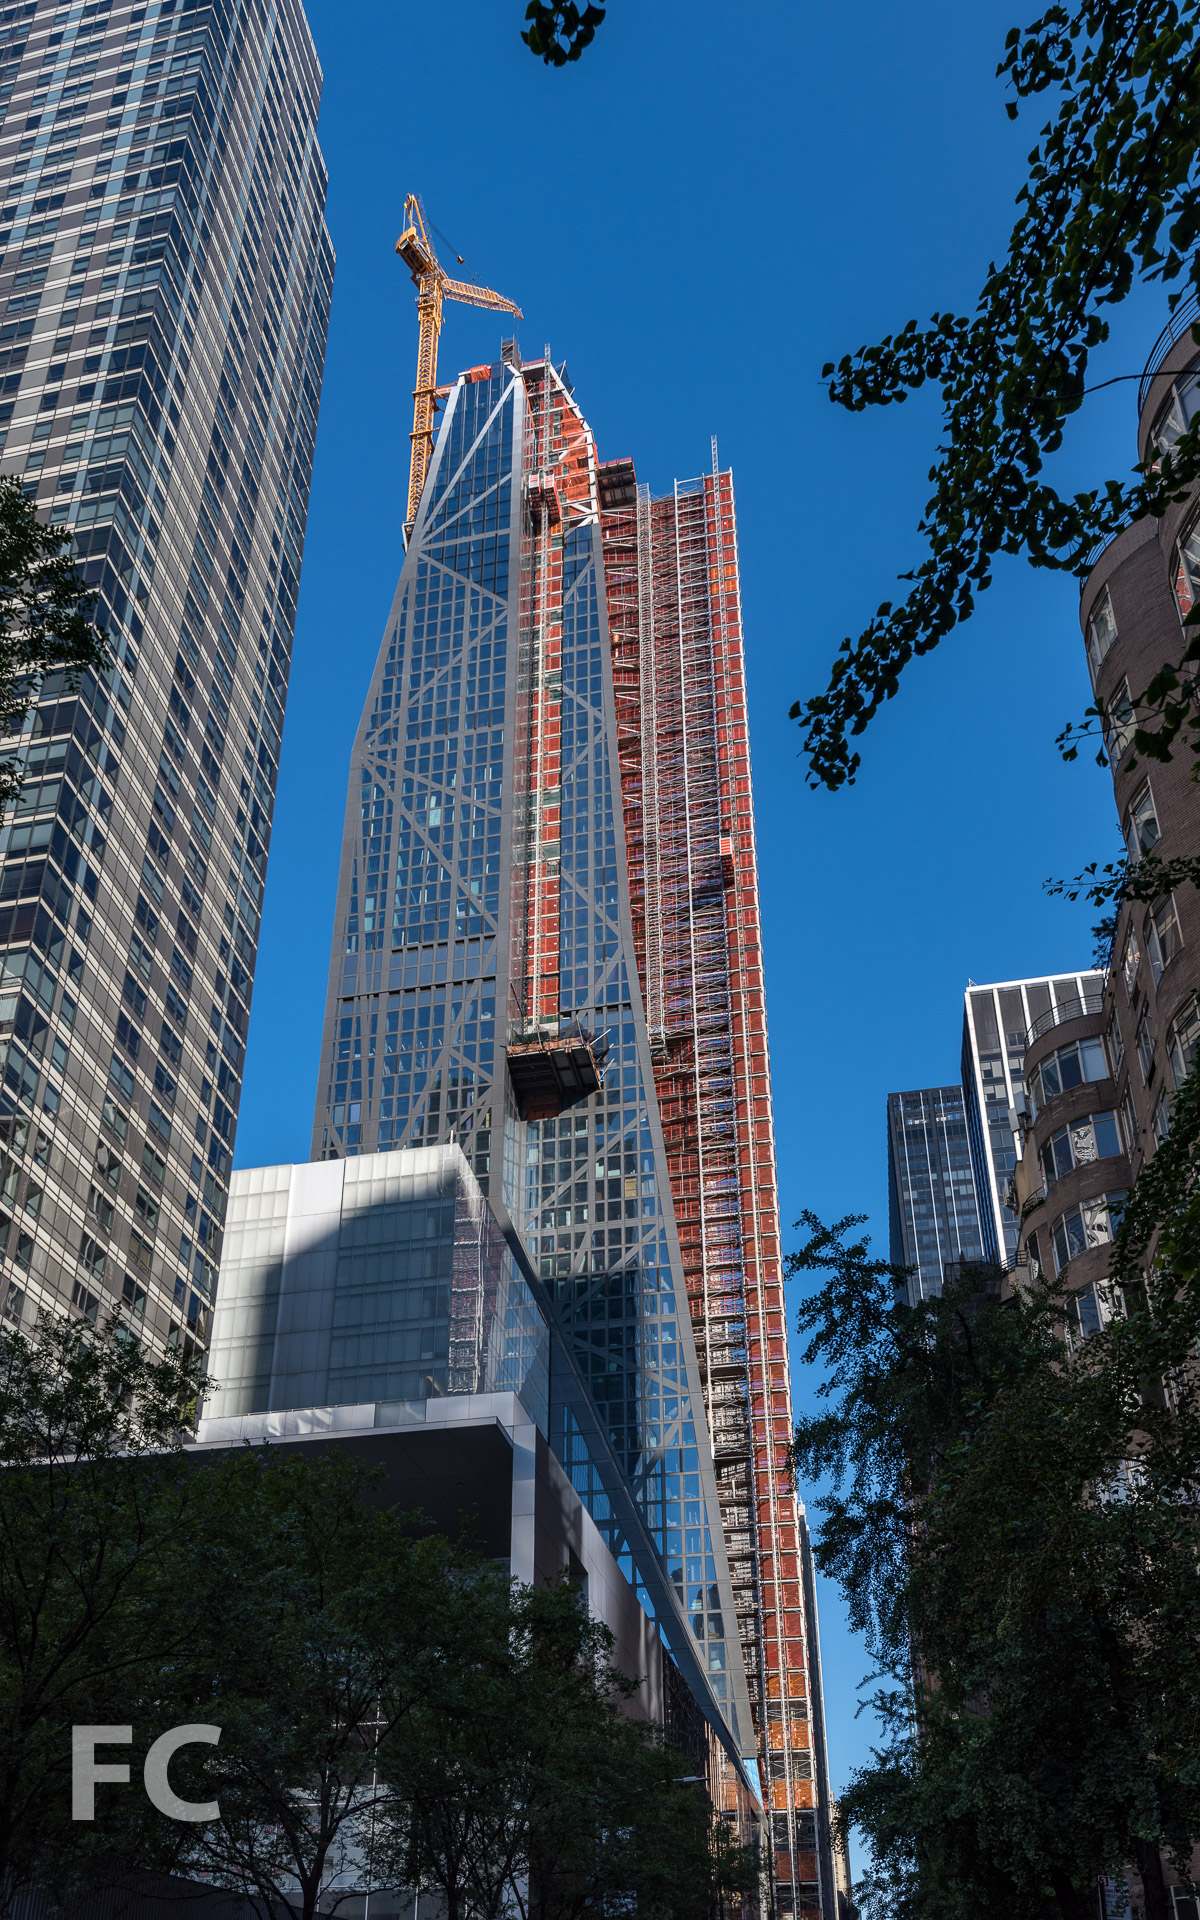 Jean Nouvel' Moma Luxury Tower 53w53 Tops 1 050